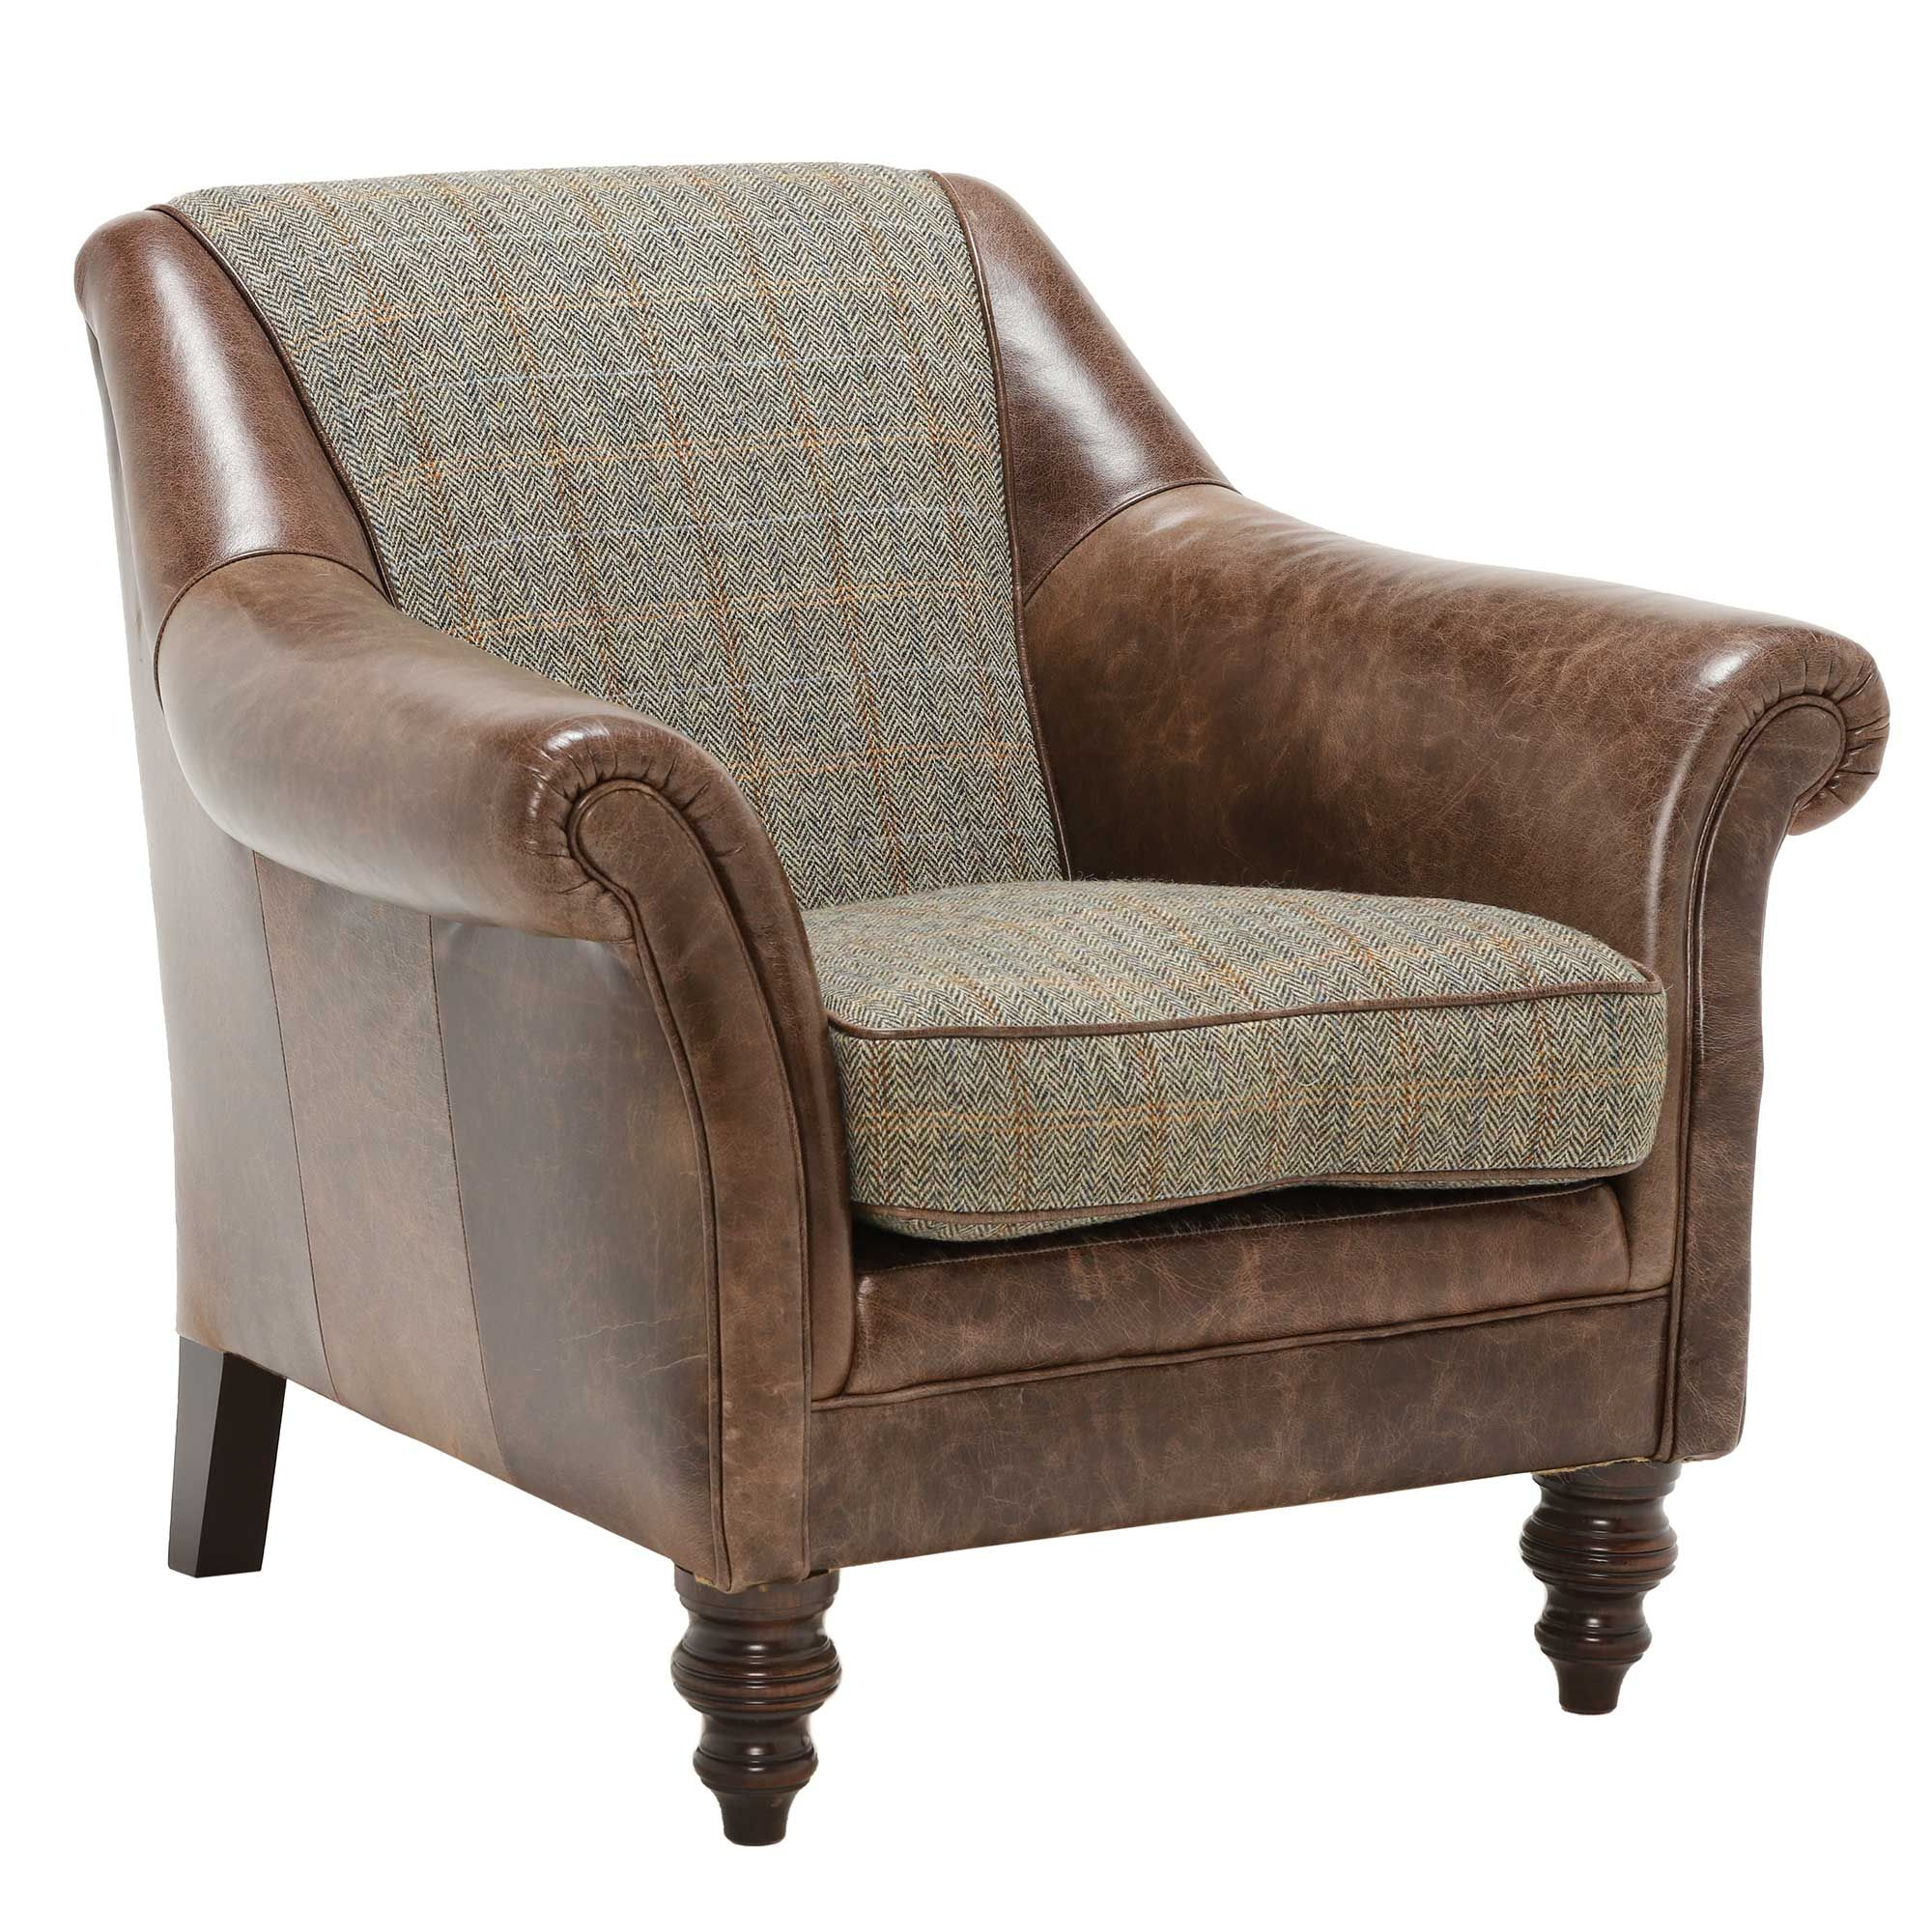 Harris Tweed Dalmore, Leather Accent Chair Barker